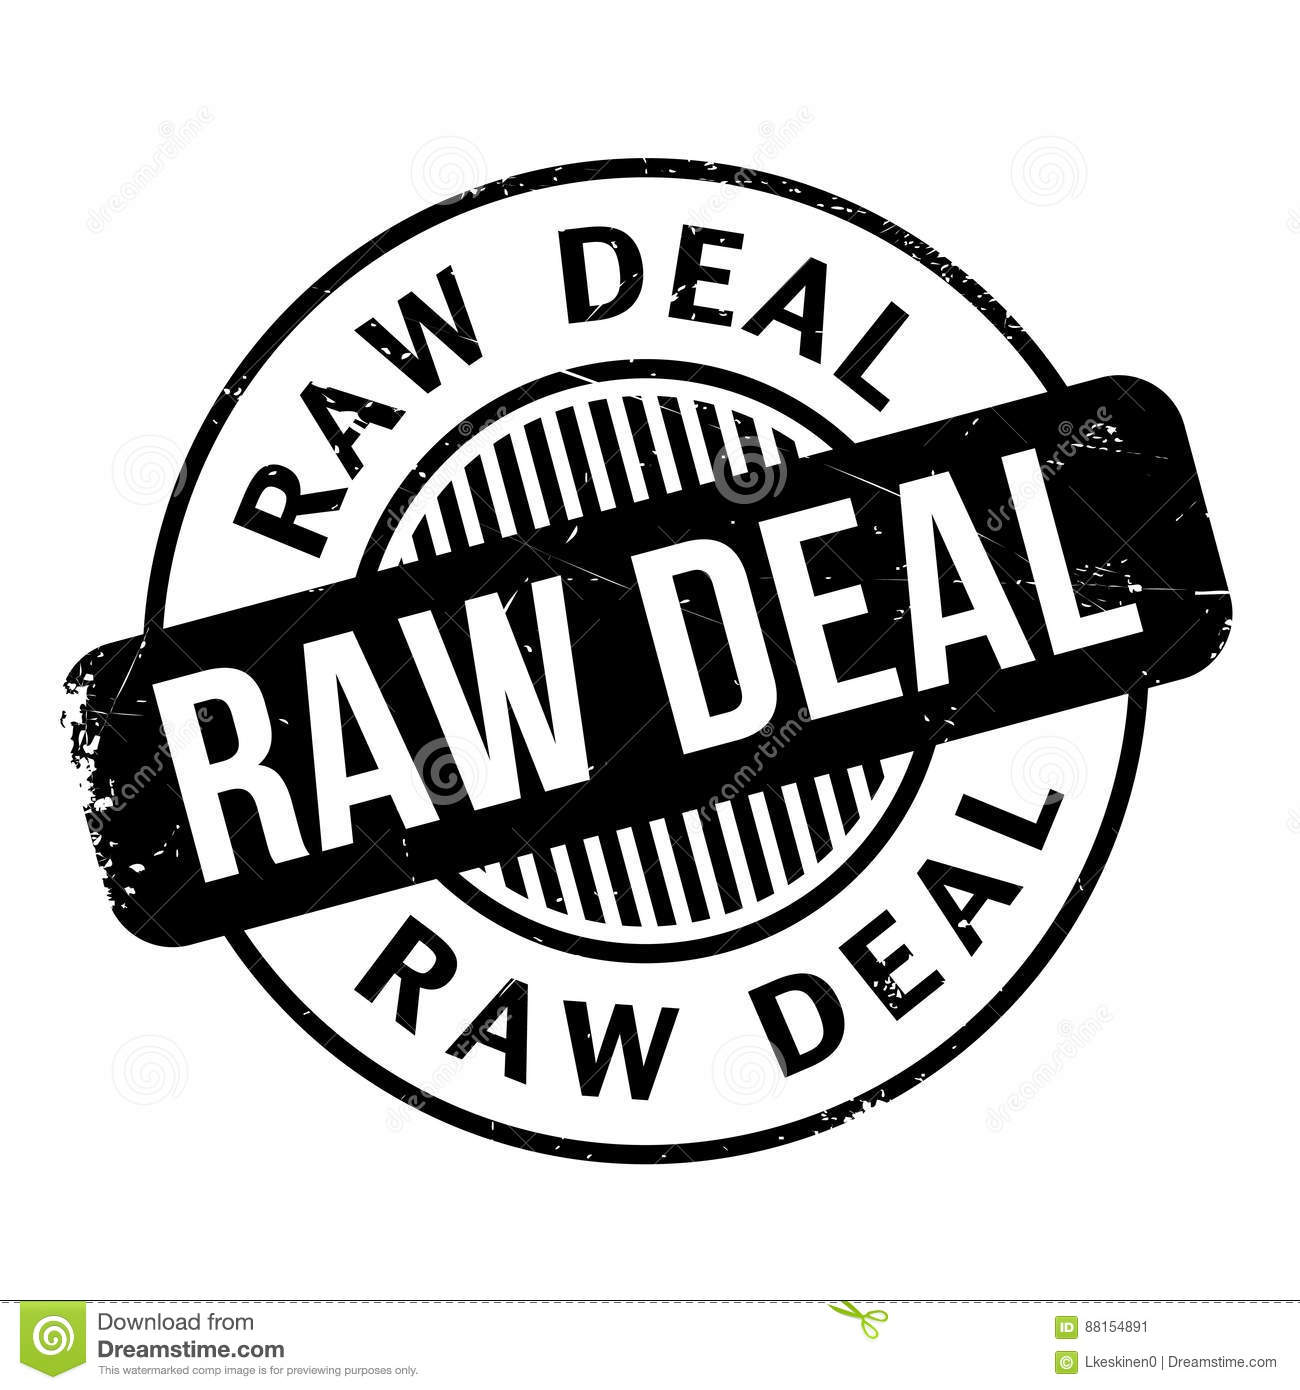 Raw deals on home decor